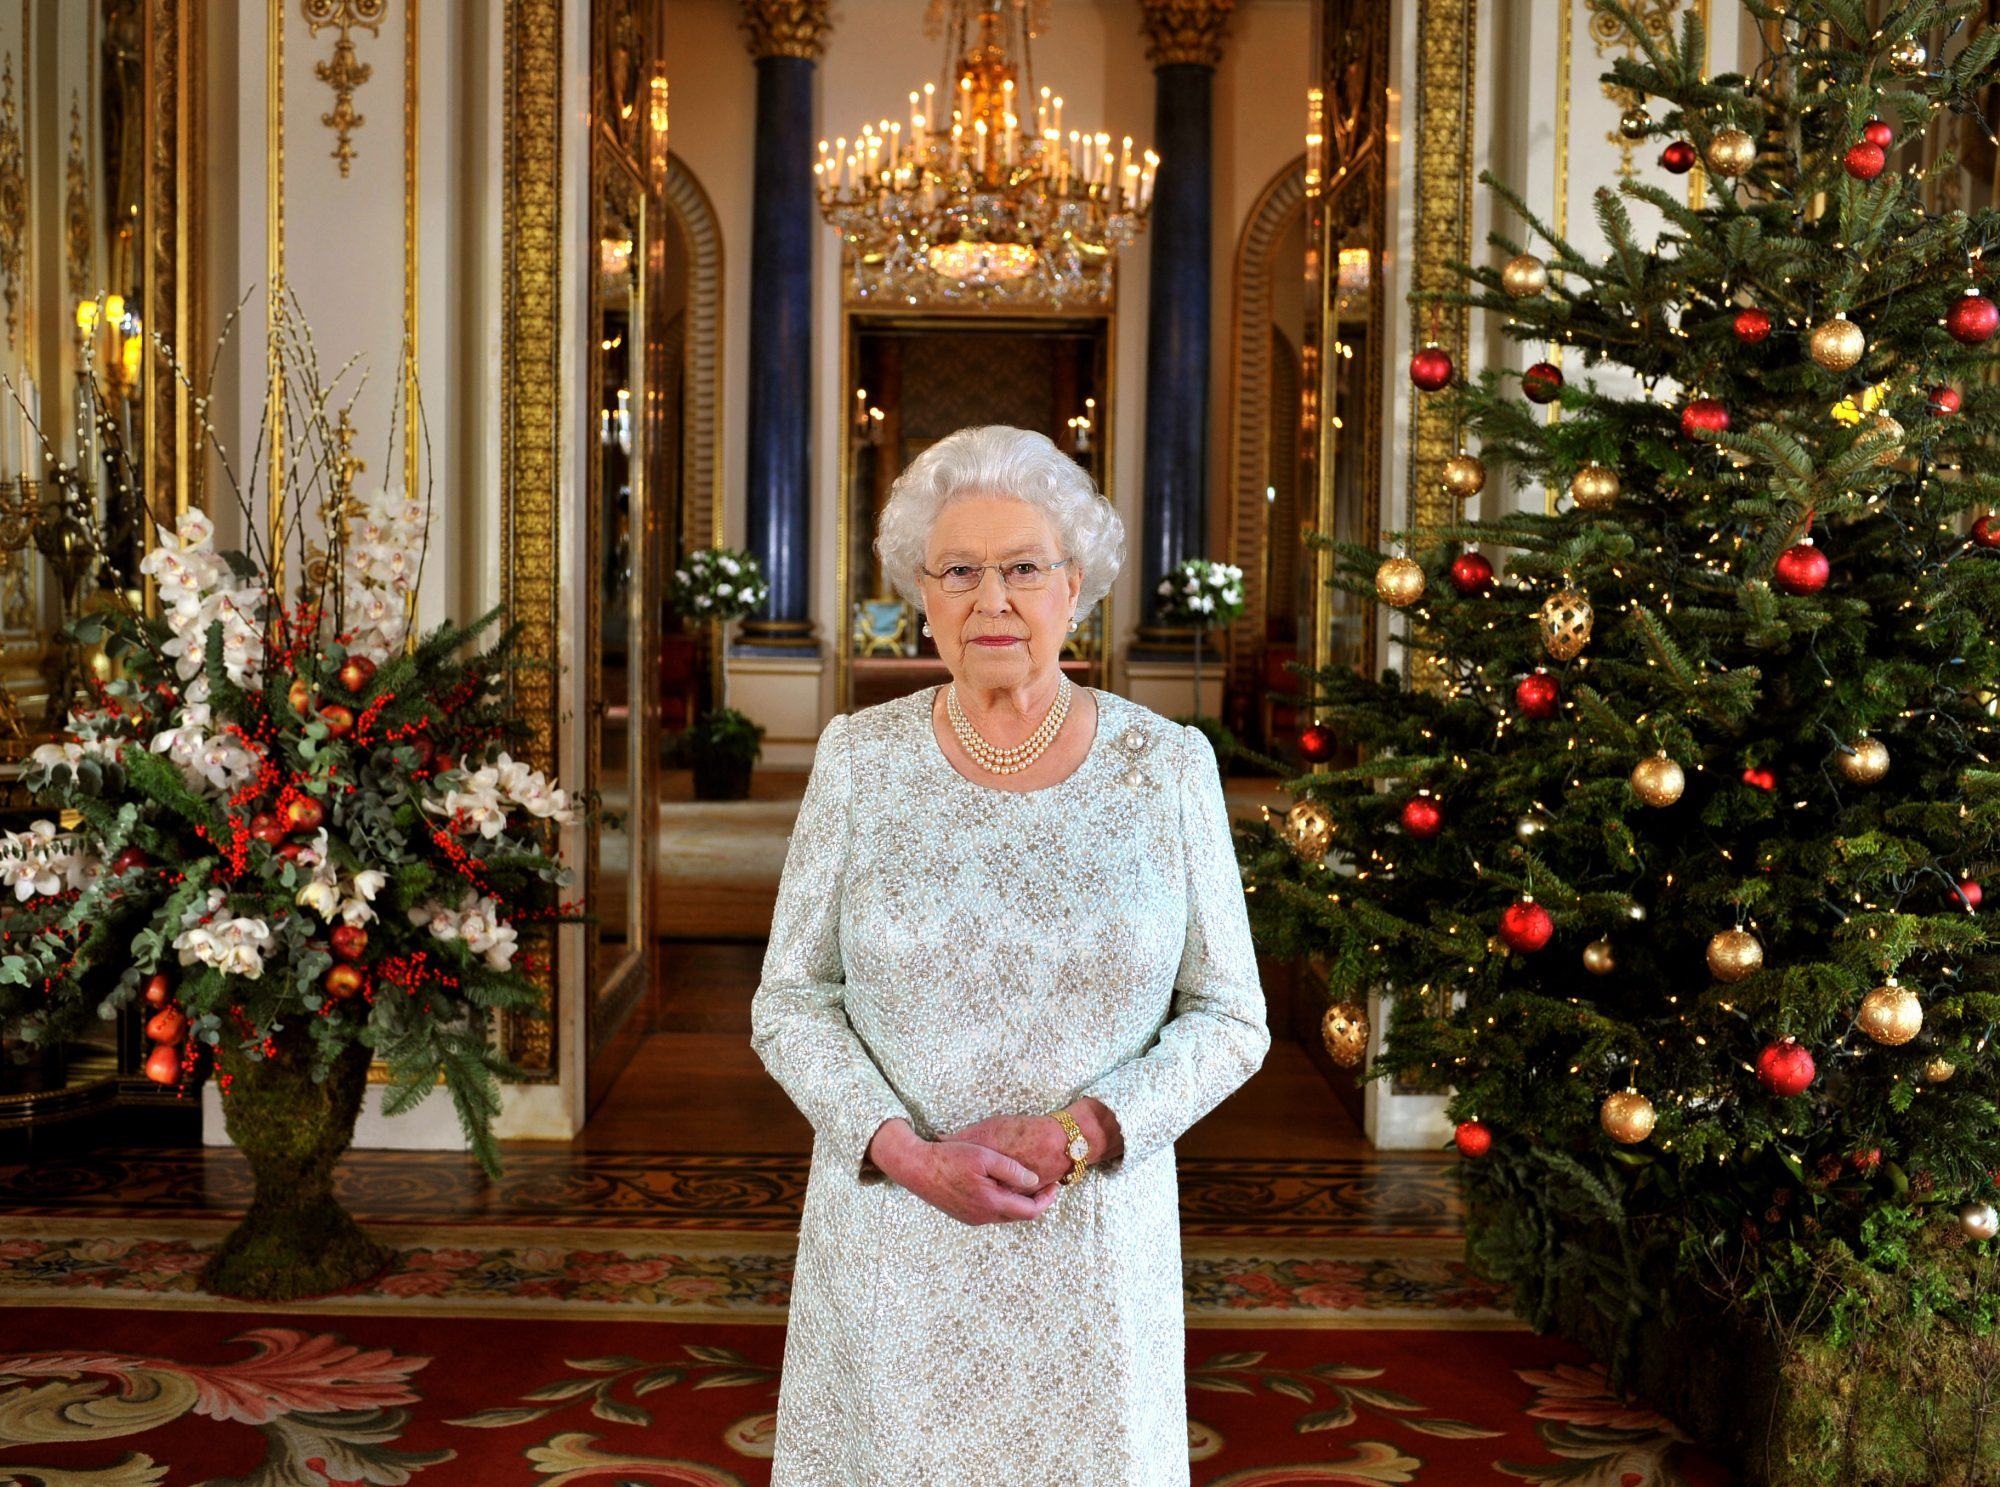 Queen Elizabeth II 2012 Christmas Broadcast at Buckingham Palace